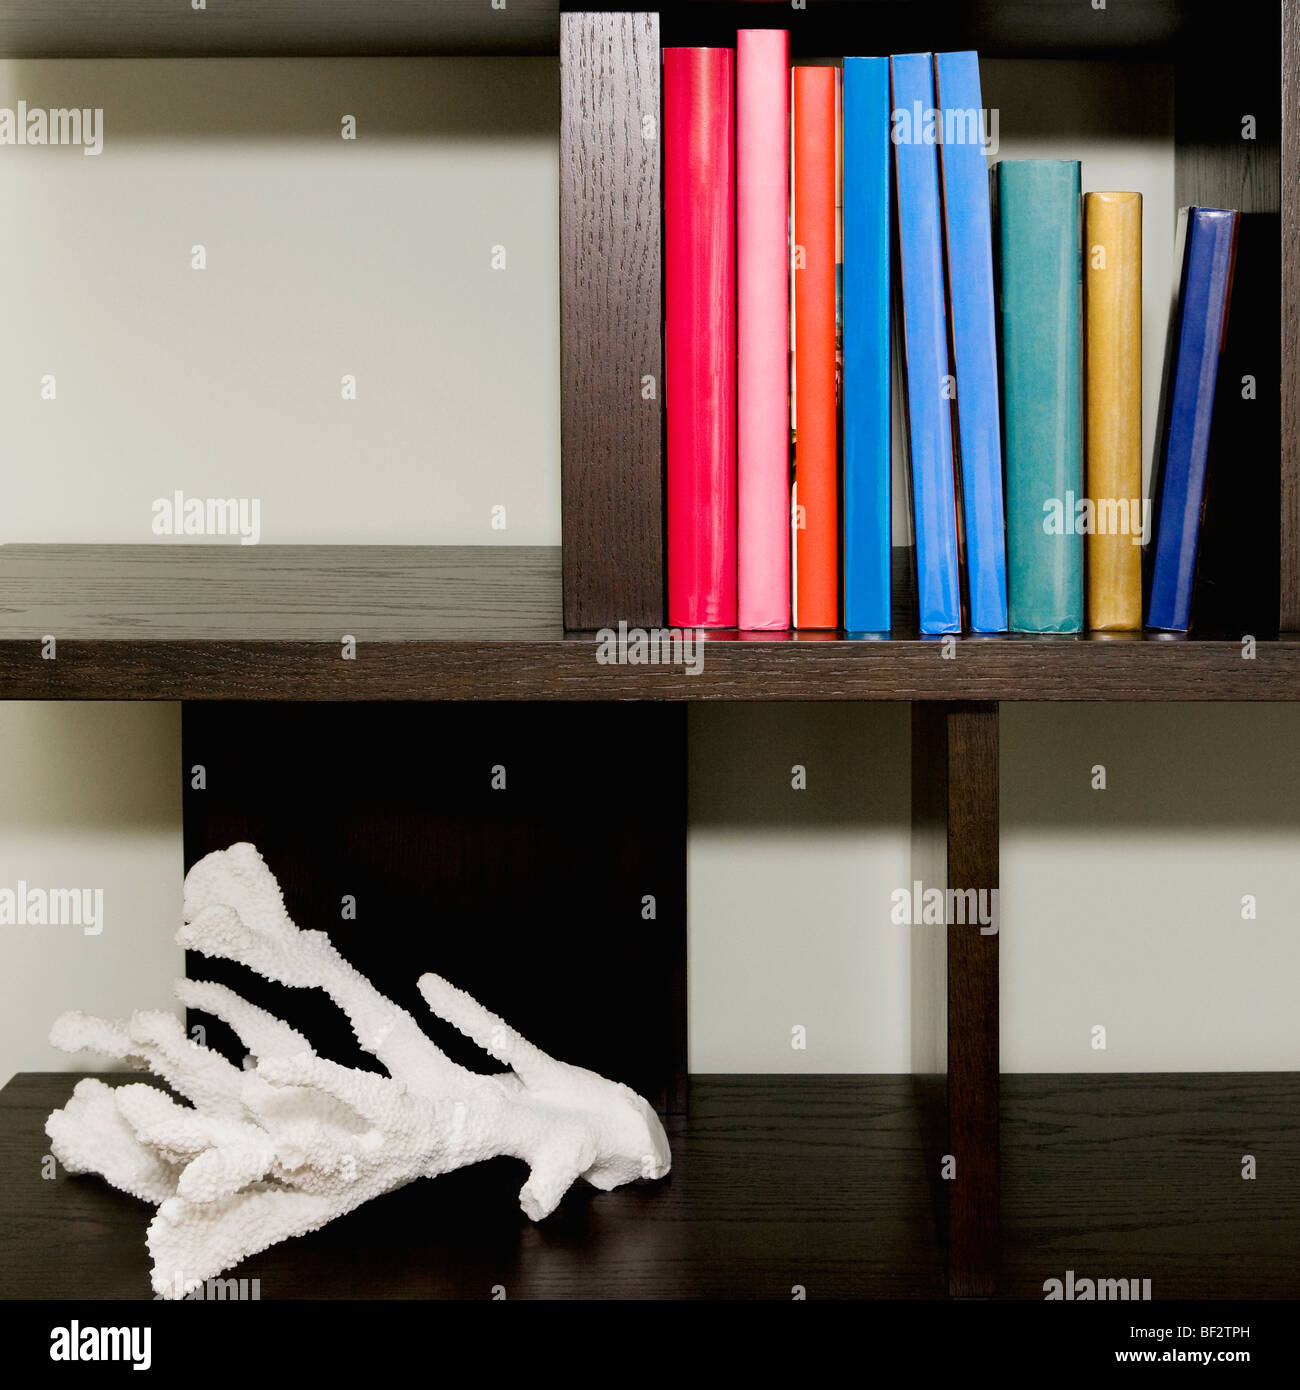 Close-up of books on a shelf - Stock Image